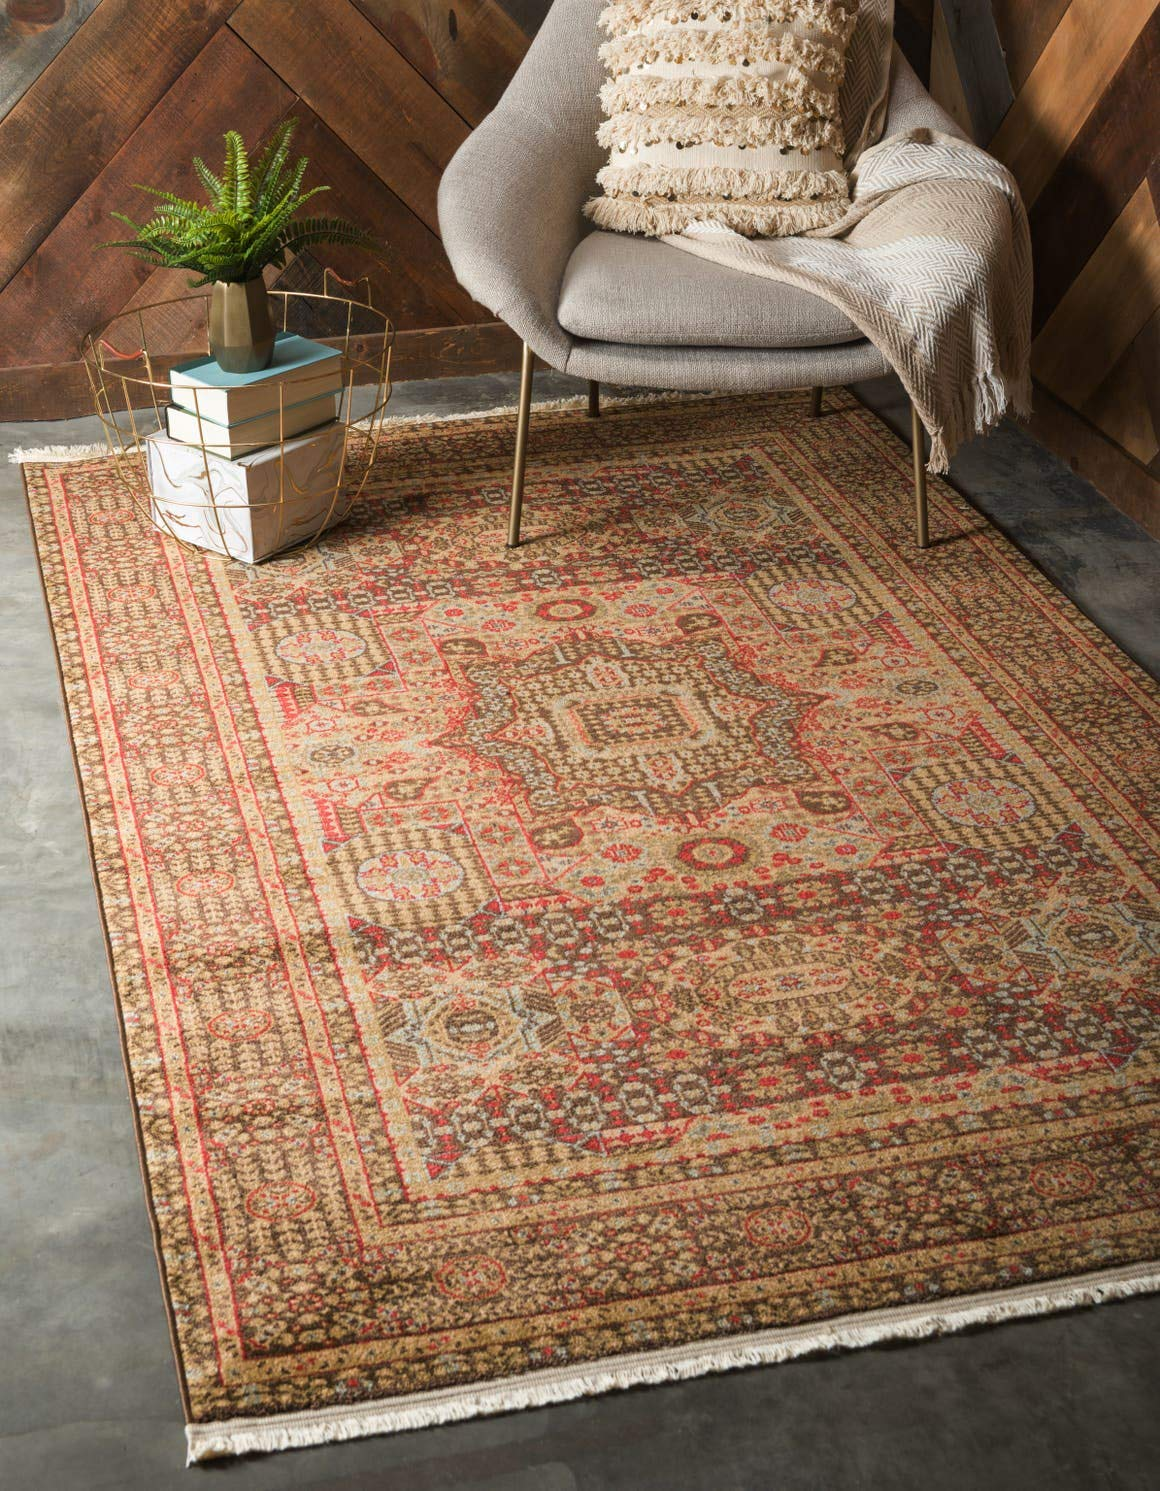 Unique Loom Palace Collection Traditoinal Geometric Classic Brown Area Rug 6 0 x 9 0